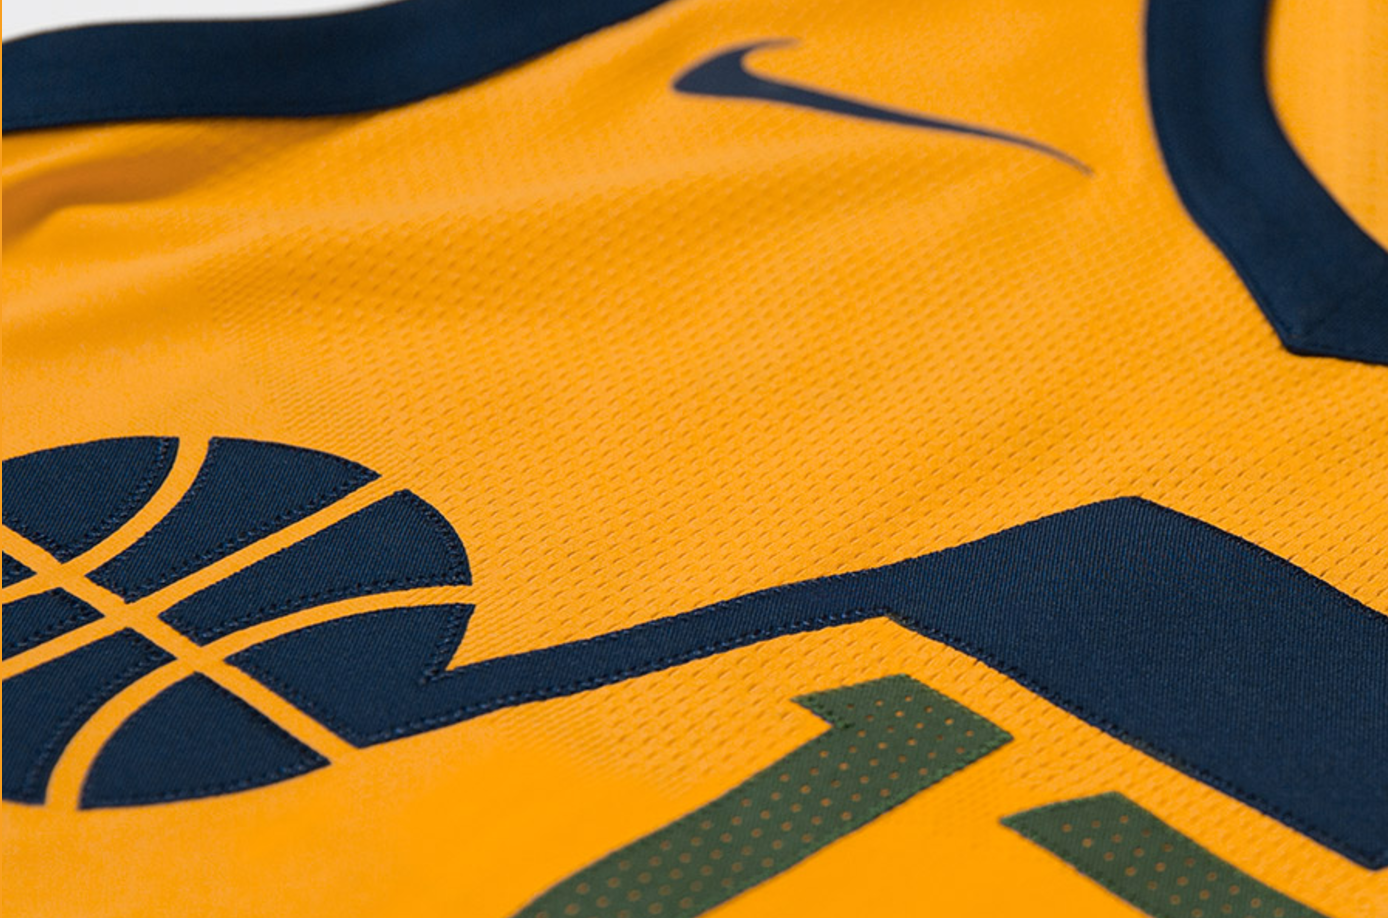 Utah Jazz and Nike Officially Debut Statement Gold Jerseys - SLC Dunk 4423993f2613